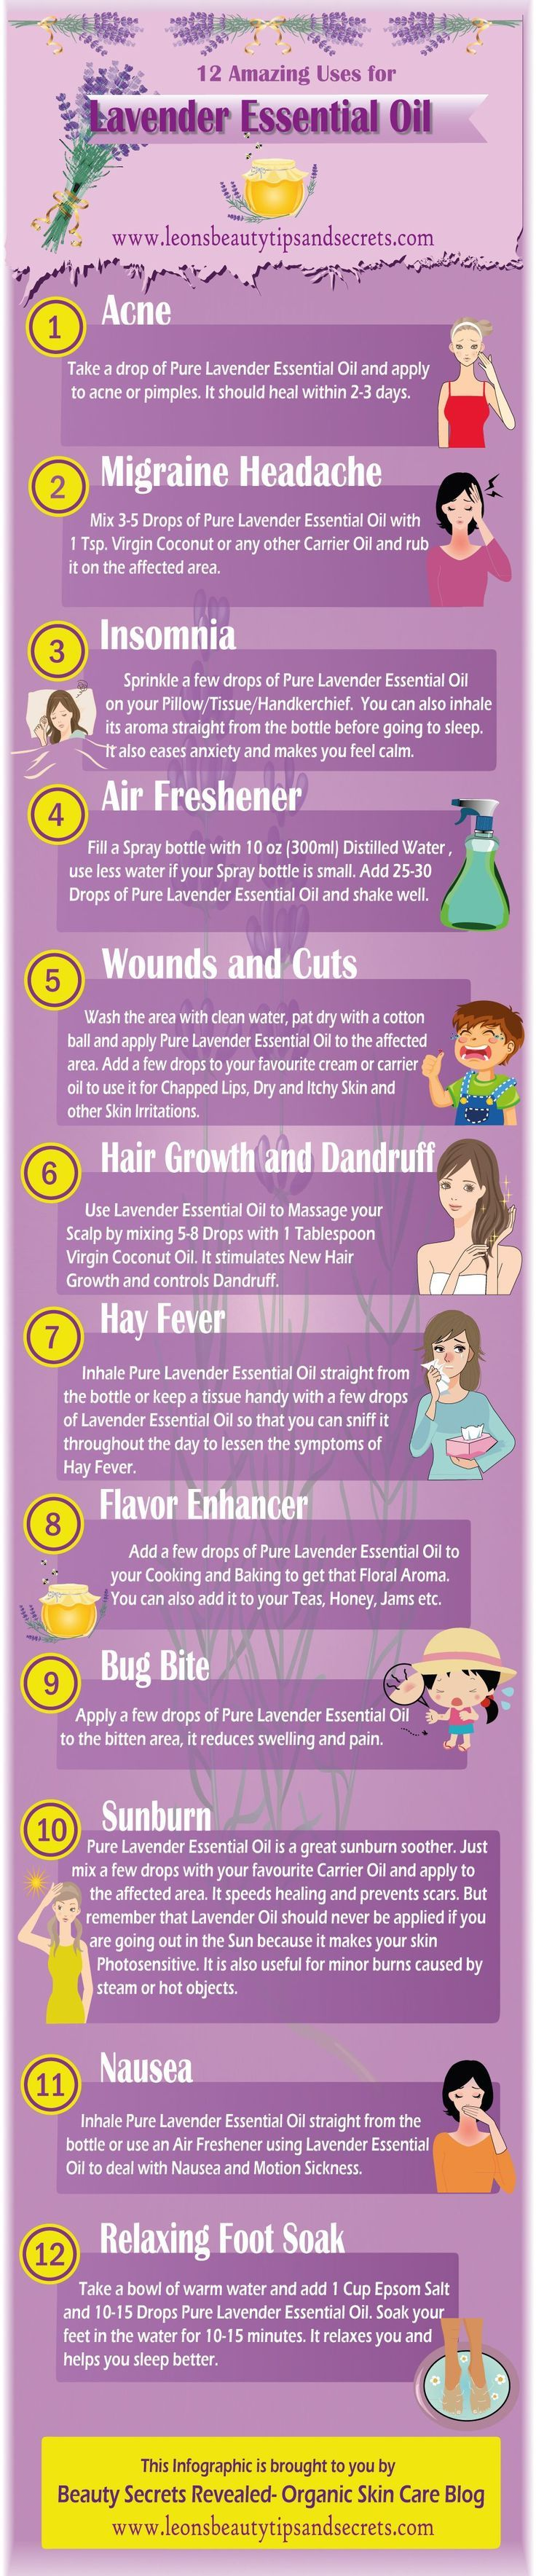 12 Amazing Uses for Lavender Essential Oil #essentialoils